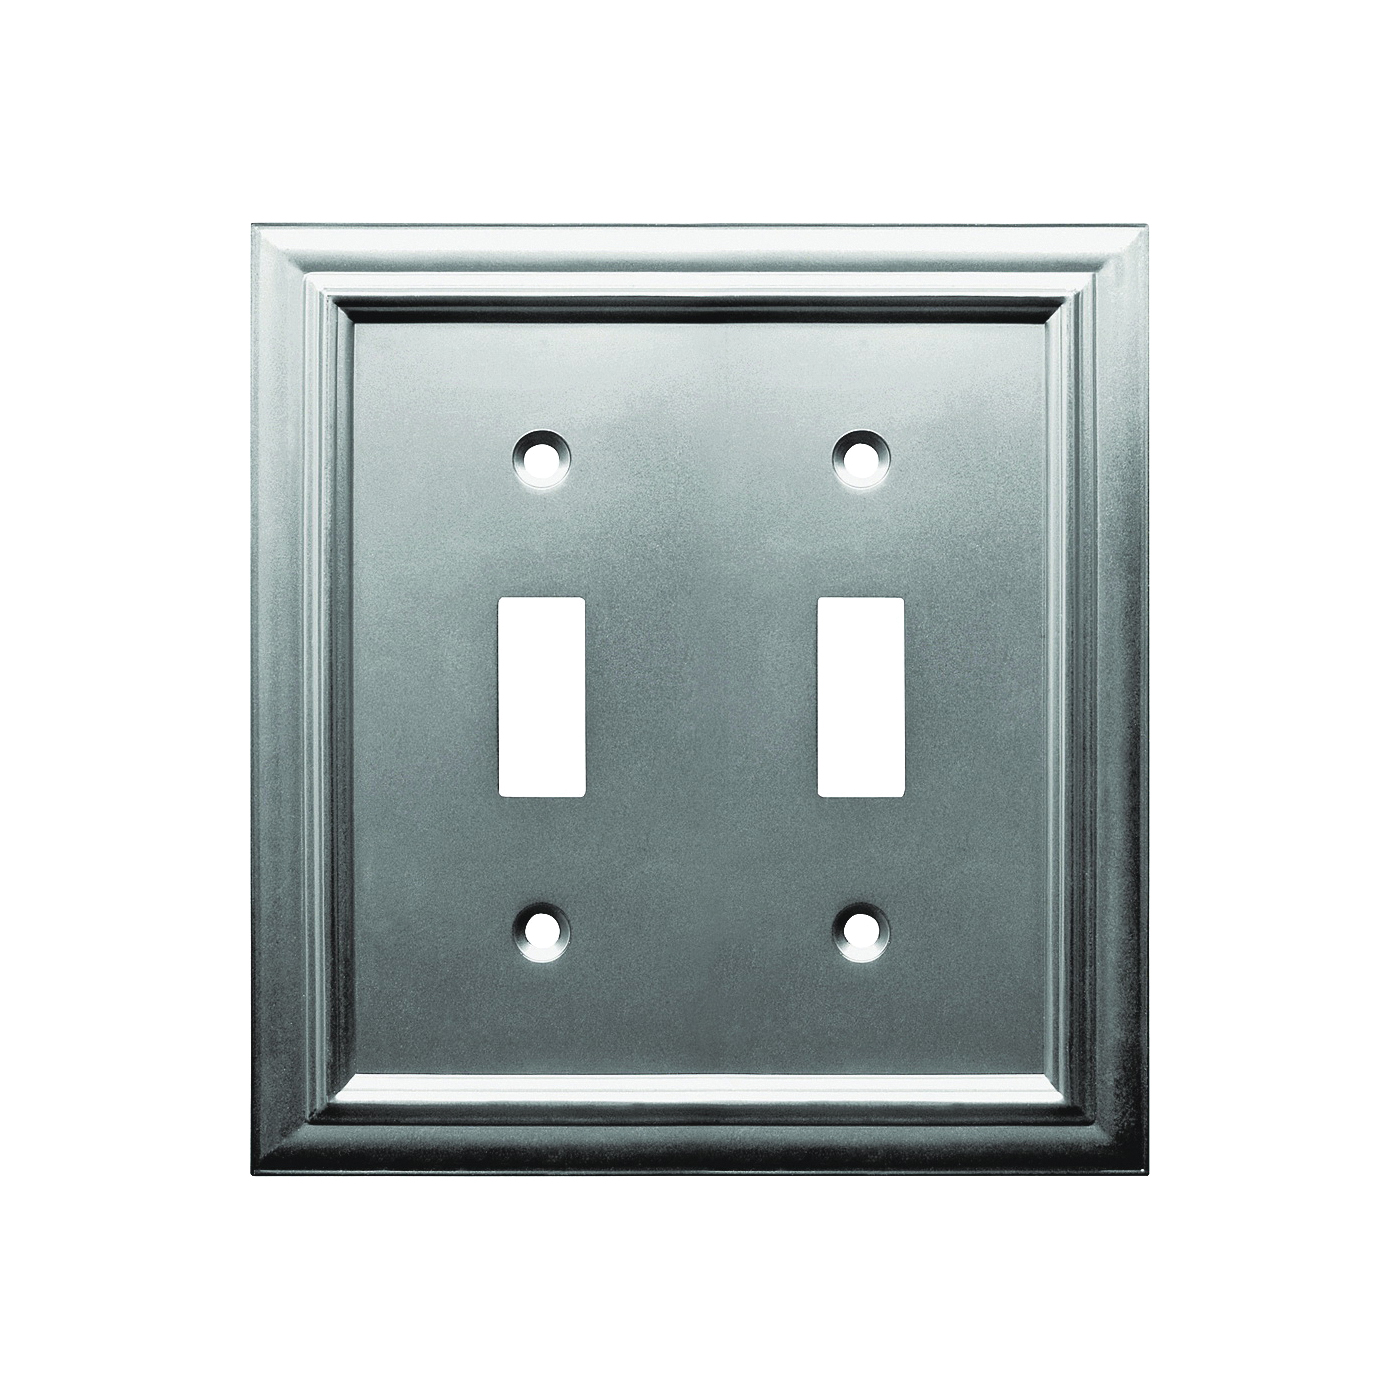 Picture of Amerelle 94TTN Wallplate, 4-15/16 in L, 4-3/4 in W, 2-Gang, Metal, Satin Nickel